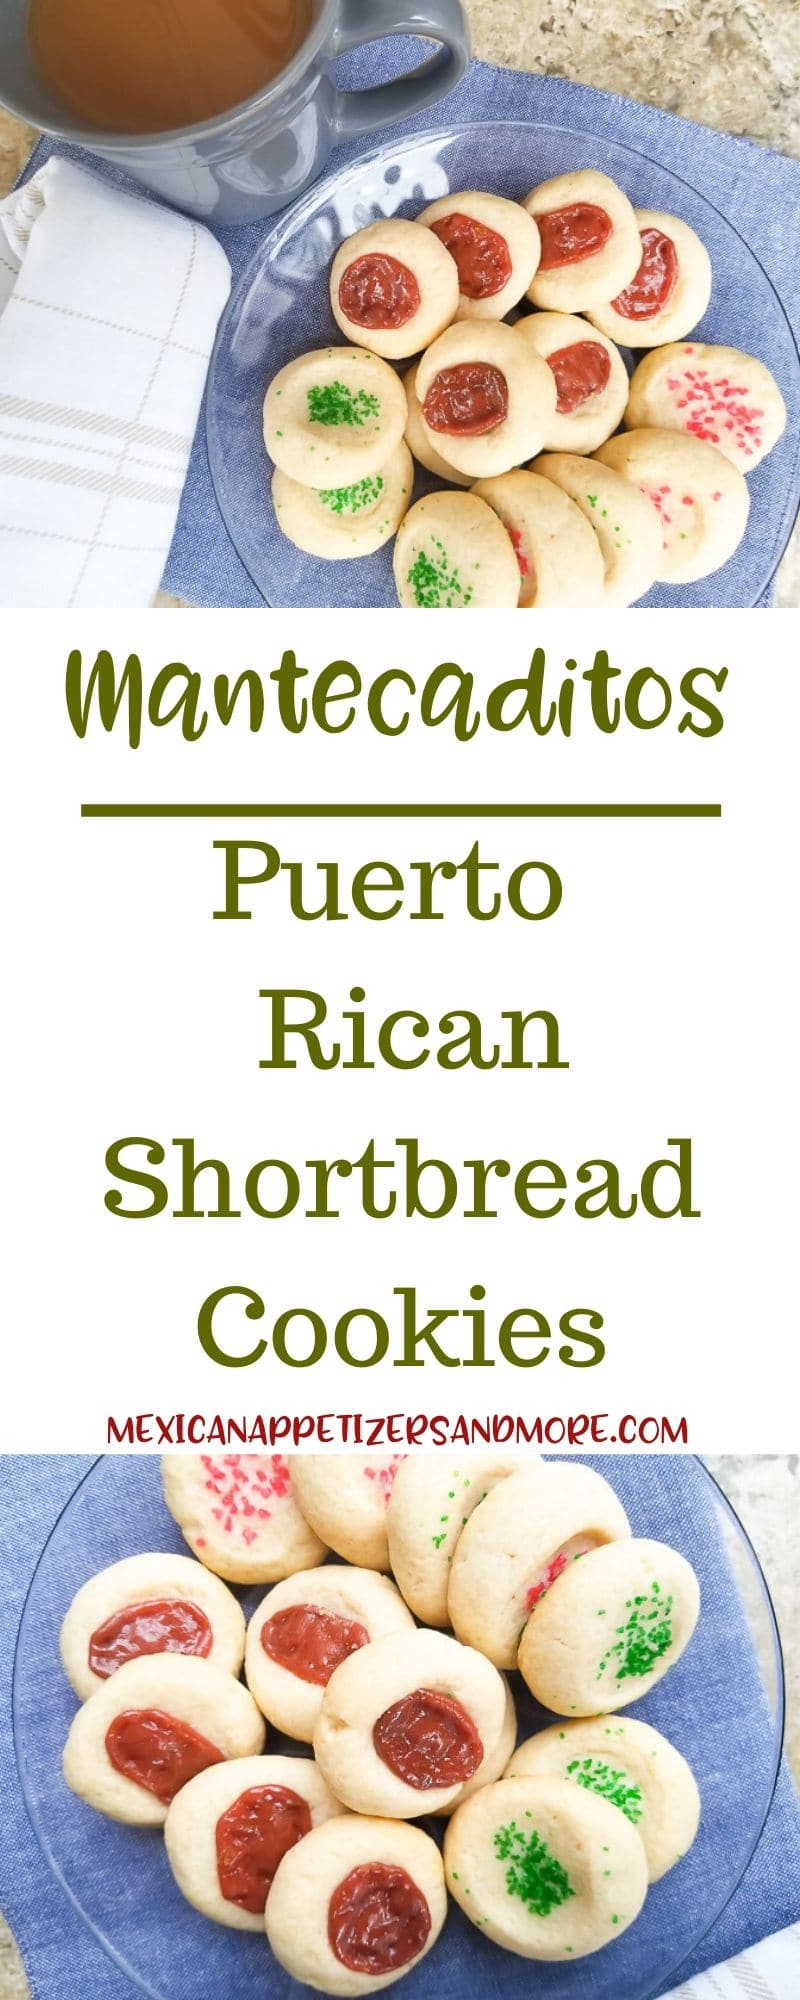 Mantecaditos (Puerto Rican Cookies) are crisp, yummy buttery cookies that are truly perfect anytime.  Serve them up with coffee or tea and you\'re good to go!  Made with just a few ingredients and easily shaped, these Puerto Rican cookies are no fuss anytime especially around the holidays! #mantecaditos #puertoricanshortbreadcookies #holidaycookies #guavacookies #guava #mantecaditospuertoricoreceta #mantecaditosreceta #guavapasterecipes #guavarecipes